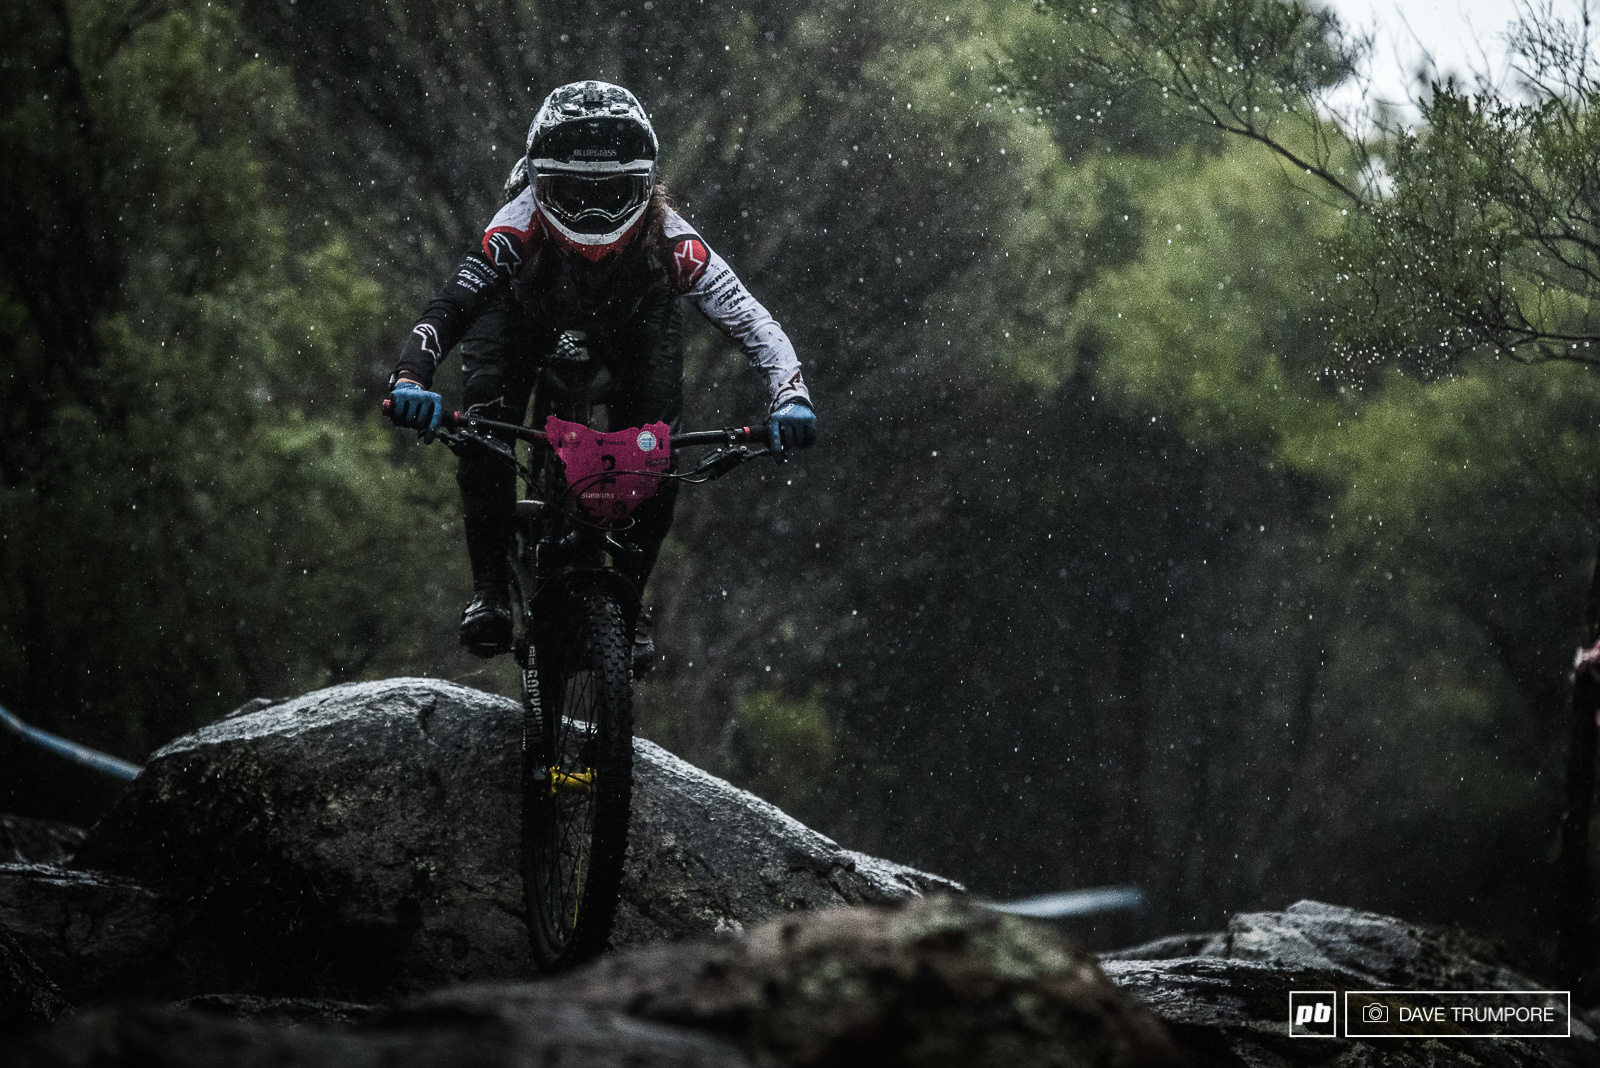 Unstoppable and determined Isabeau Courdurier came out swinging with three stage wins to take her first EWS race victory.